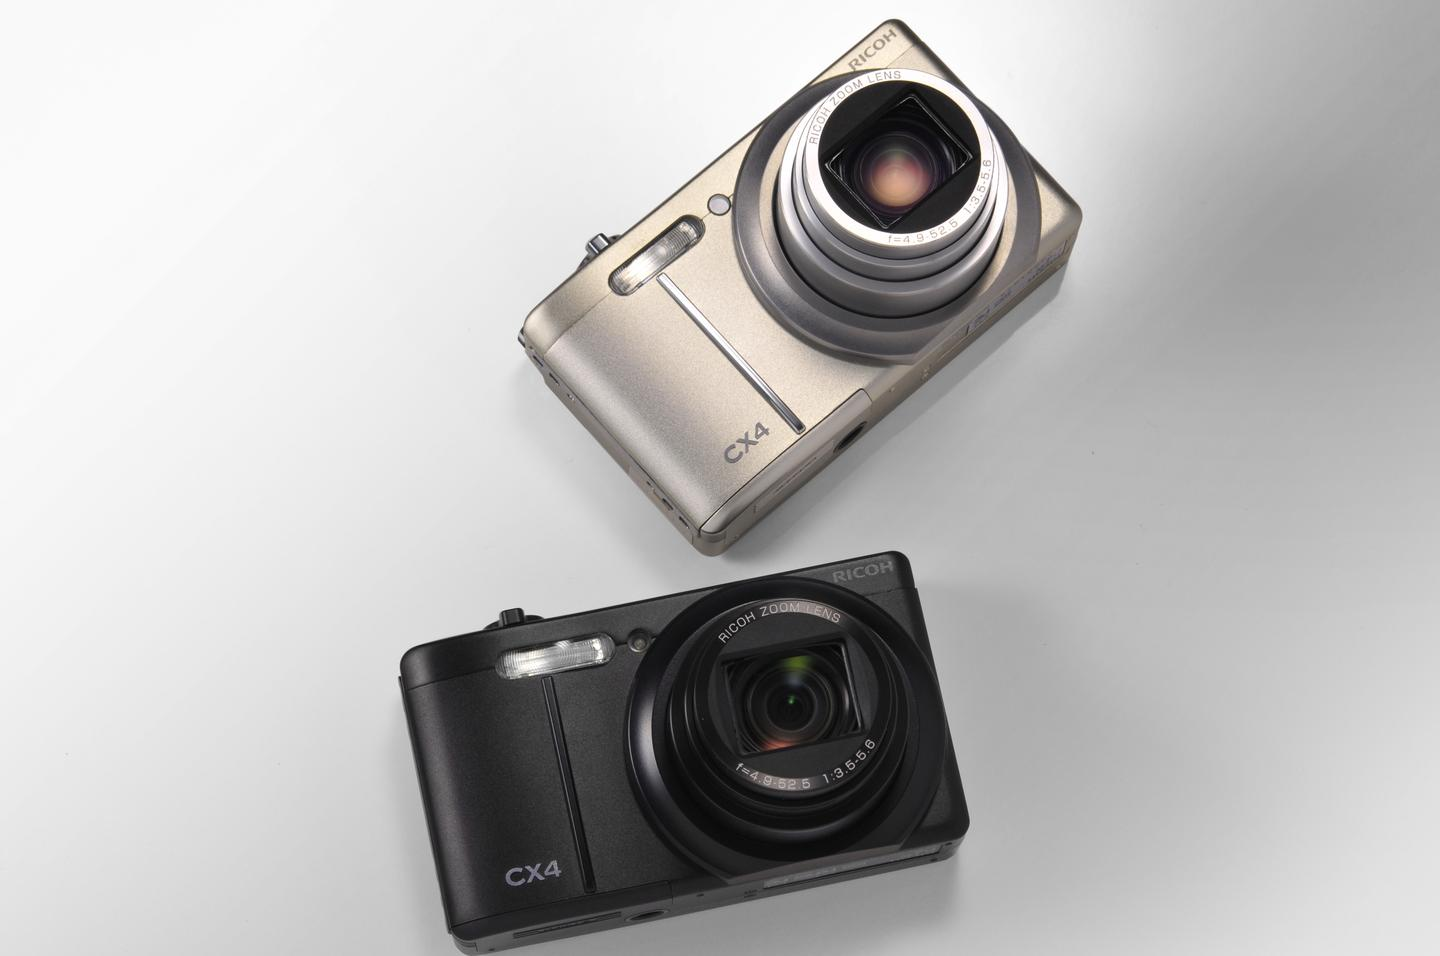 The CX4 in black and silver, from the front with the lens open